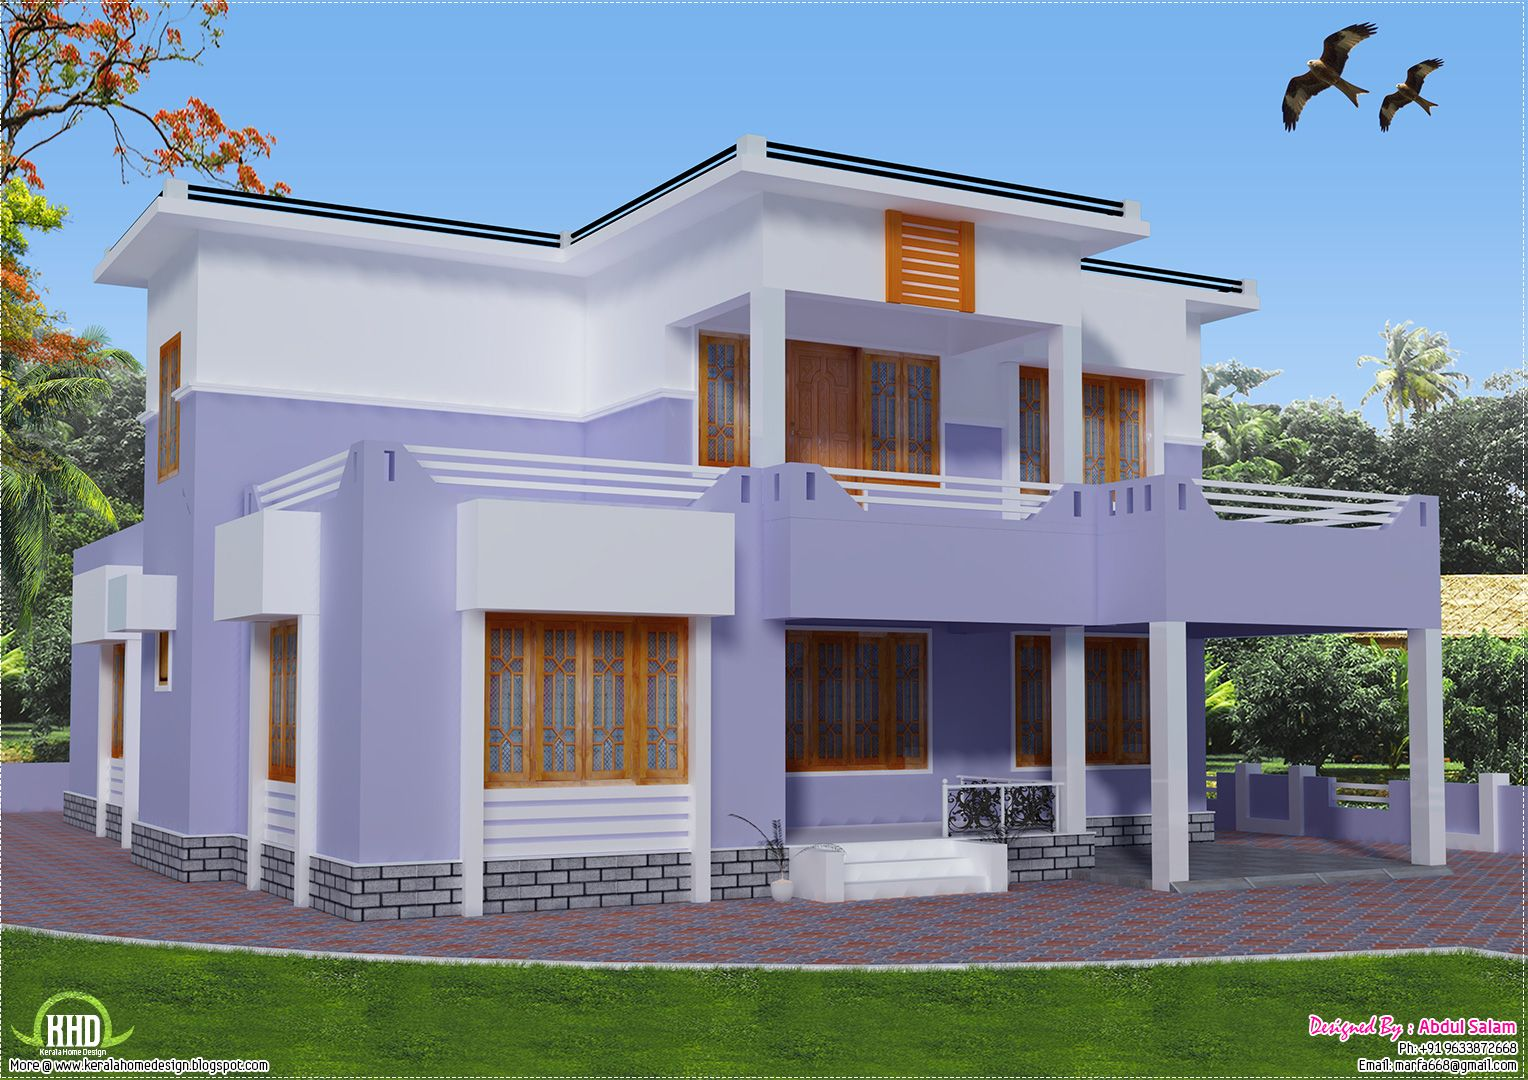 Sq feet details facilities house sq feet flat roof for Kerala home design flat roof elevation